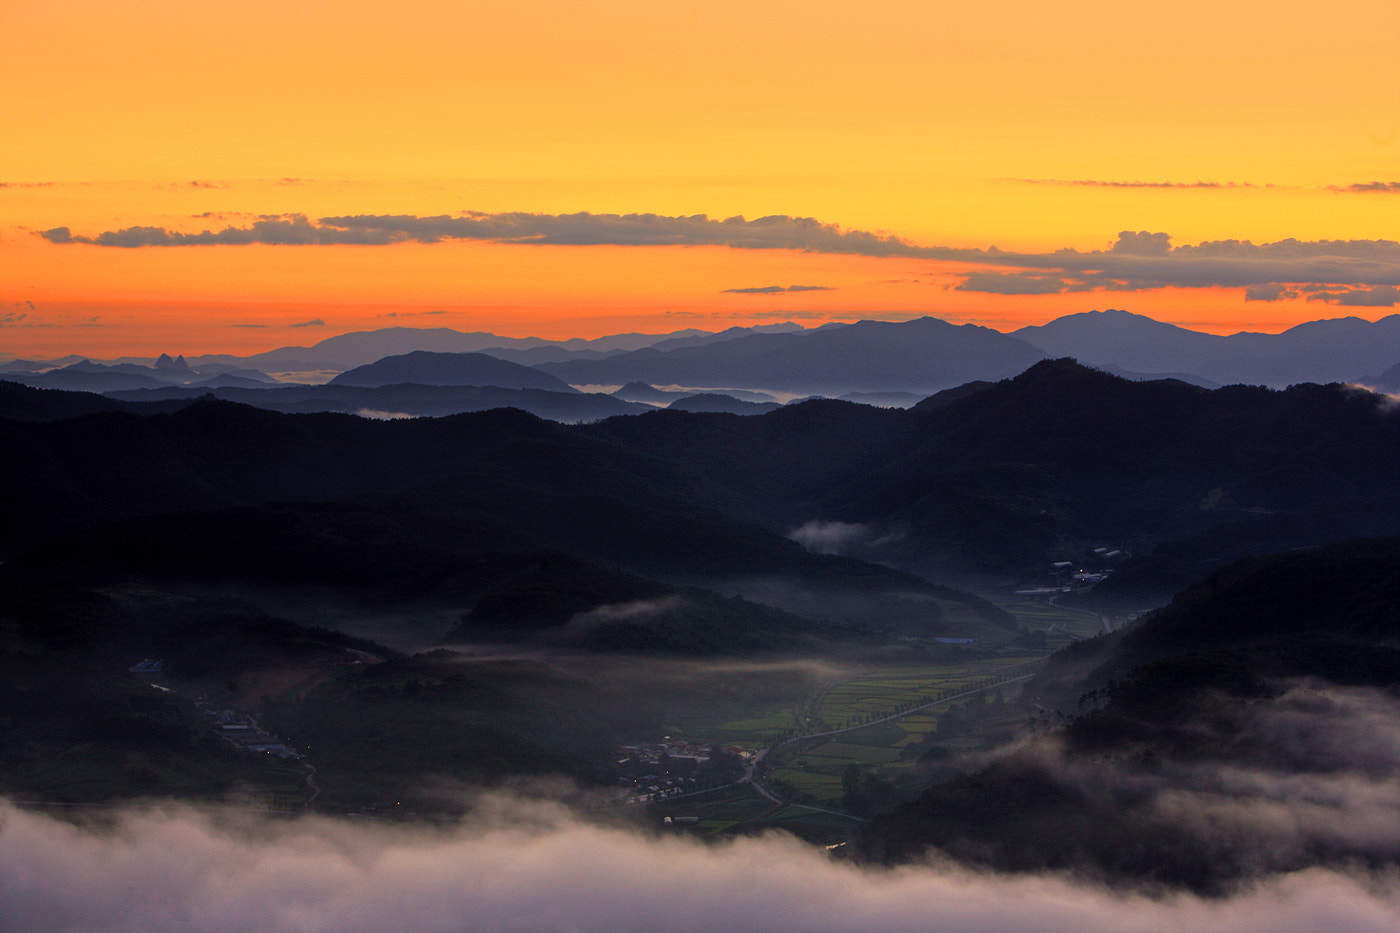 Photograph Good morning Mt.MAI by Sun Byoung Park on 500px